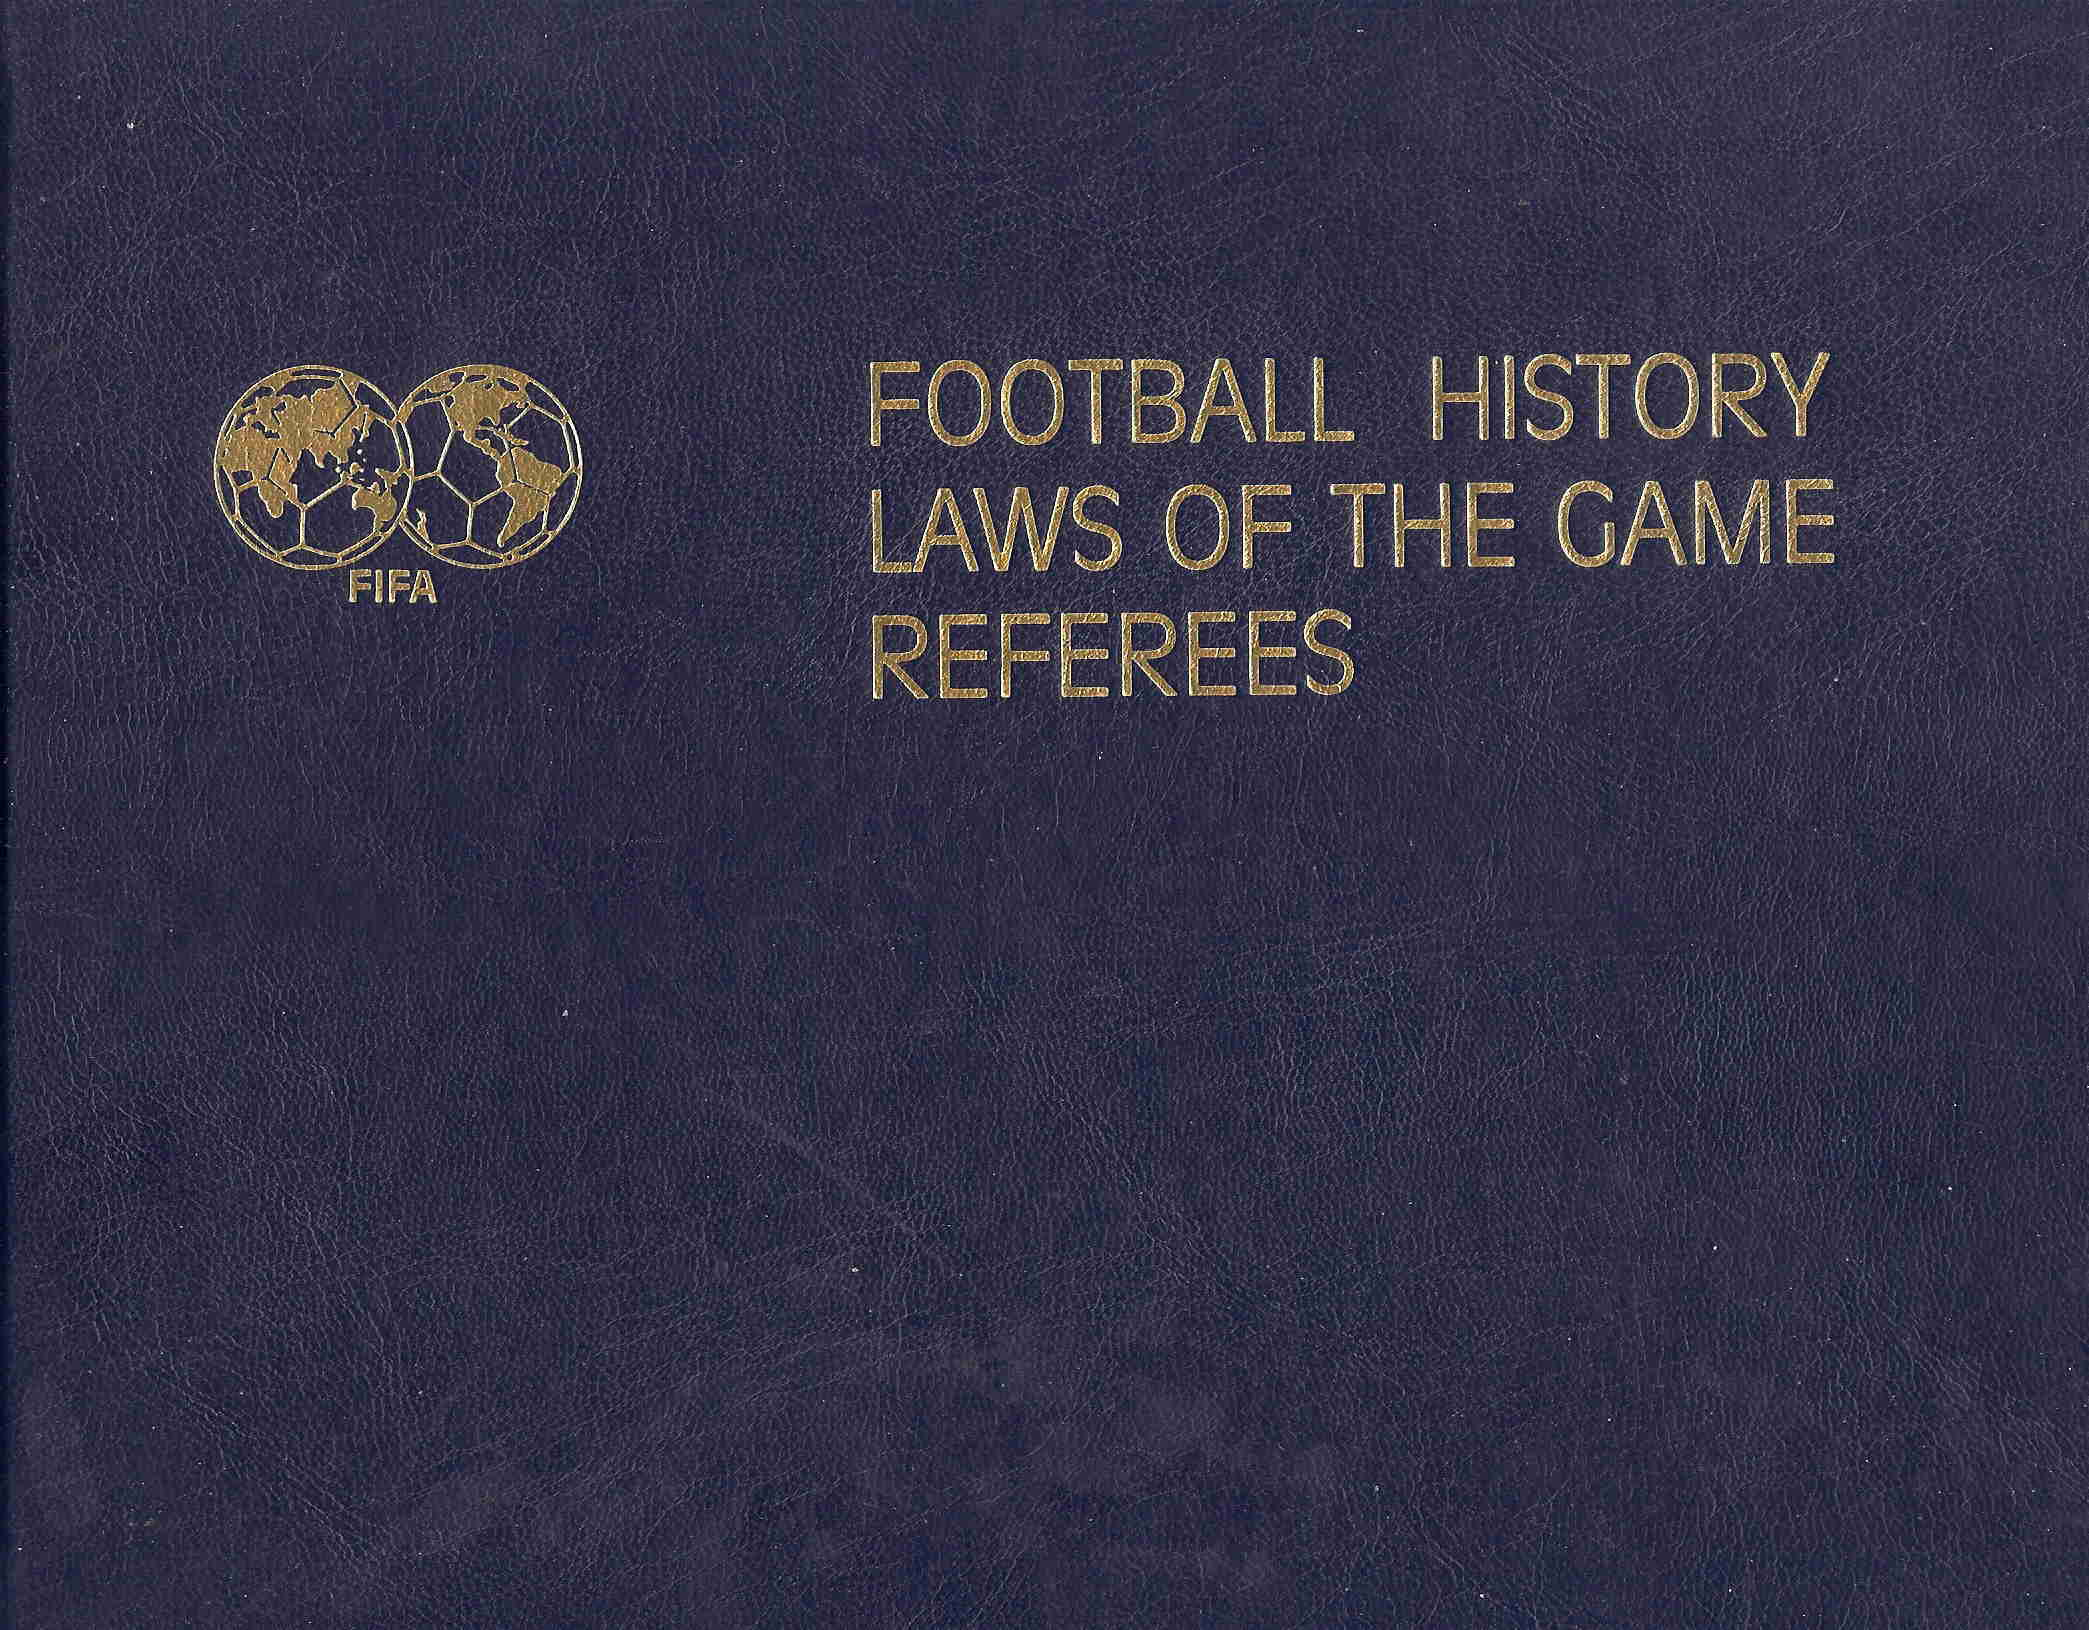 Football history - Laws of the game - Referees